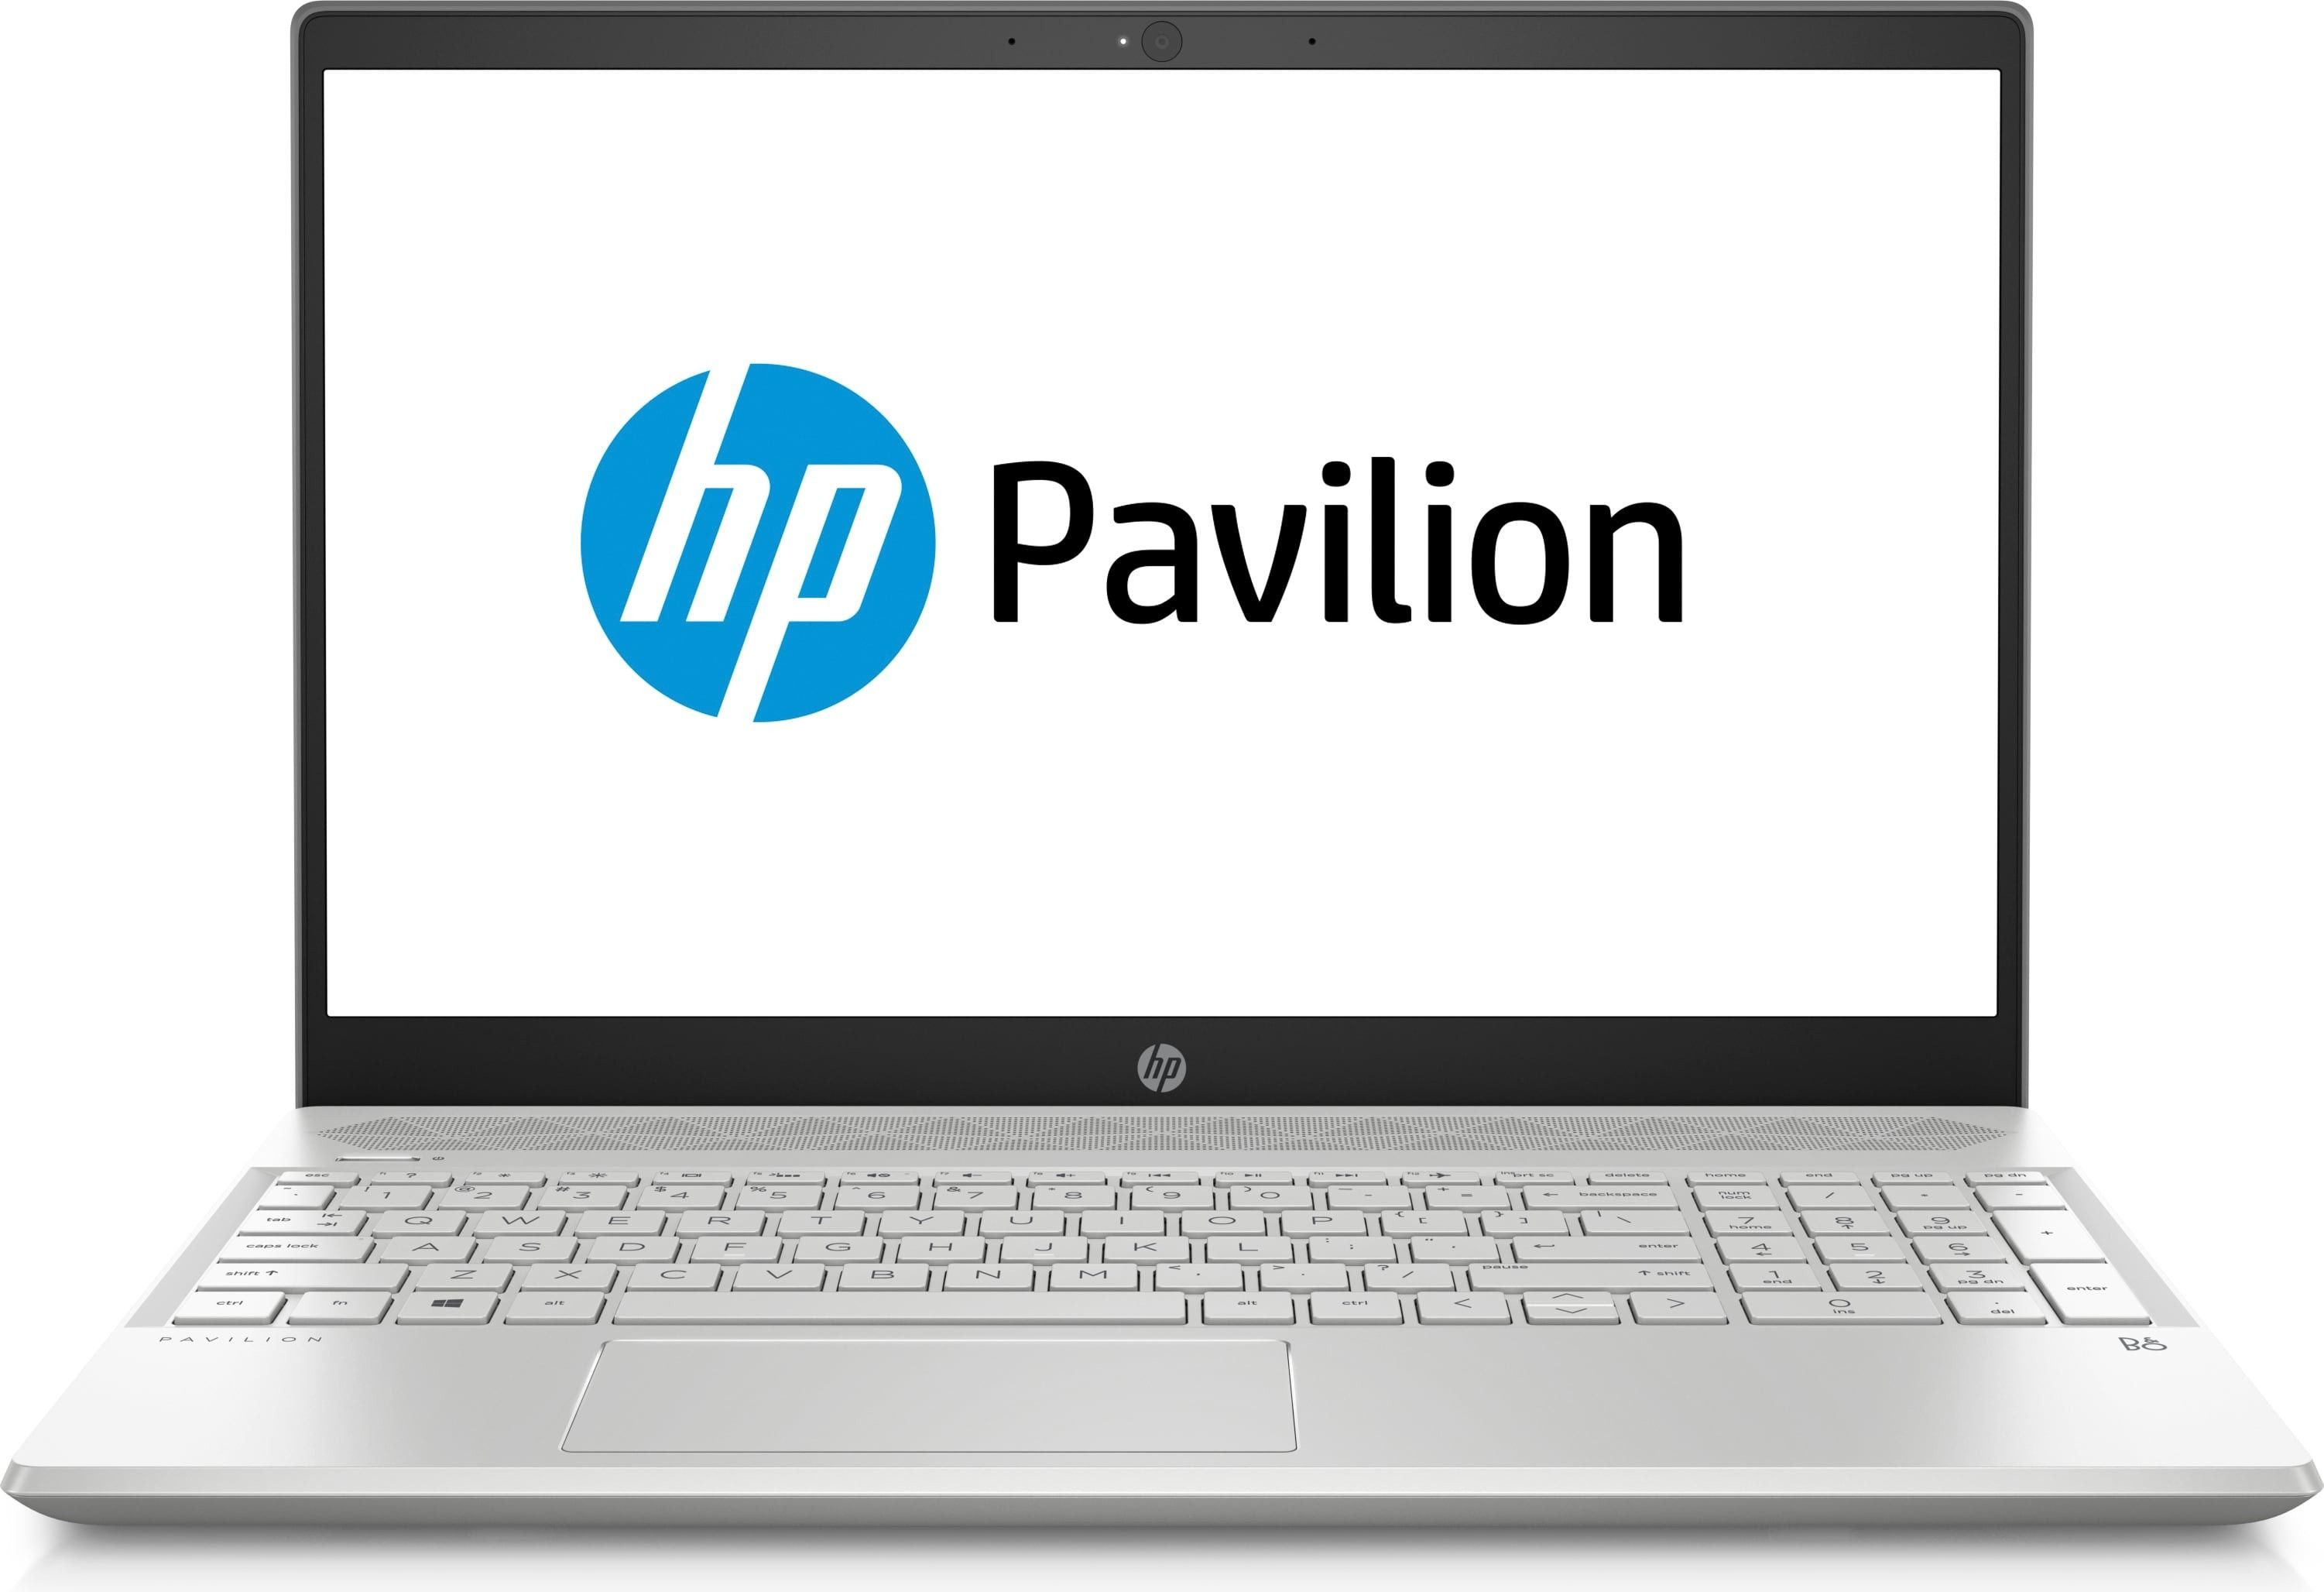 Buy Hp Notebook Pavilion 15 Cs1005nv Intel I7 8565u Quad Core 1 8 Ghz At Bestbuycyprus Com For 1 245 00 With Free Del With Images Hp Pavilion Best Gaming Laptop Hp Laptop